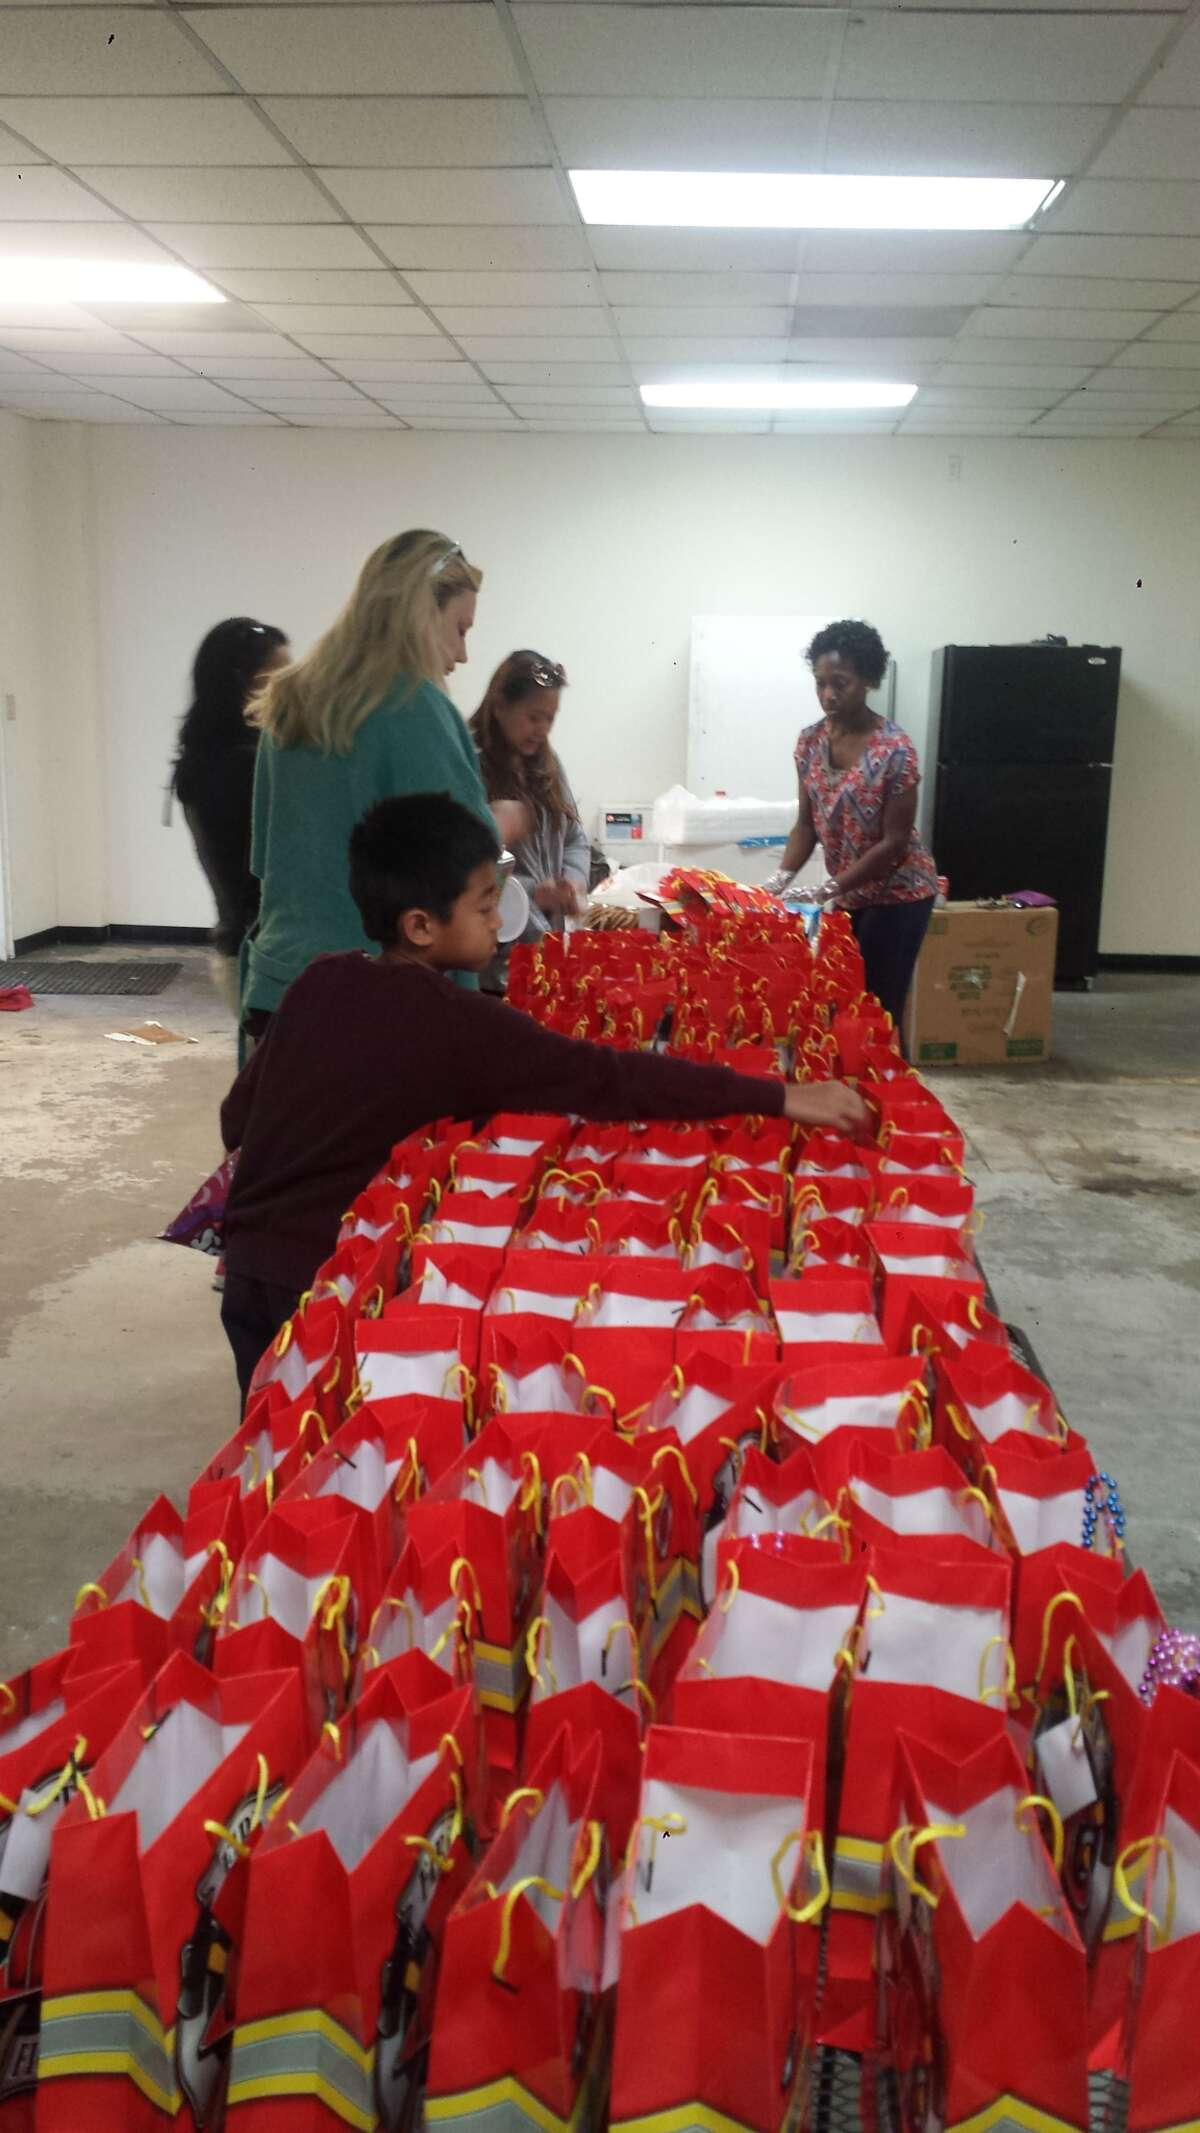 Dylan Carnley, foreground, helps pack treat bags for Houston firefighters. Courtesy photo